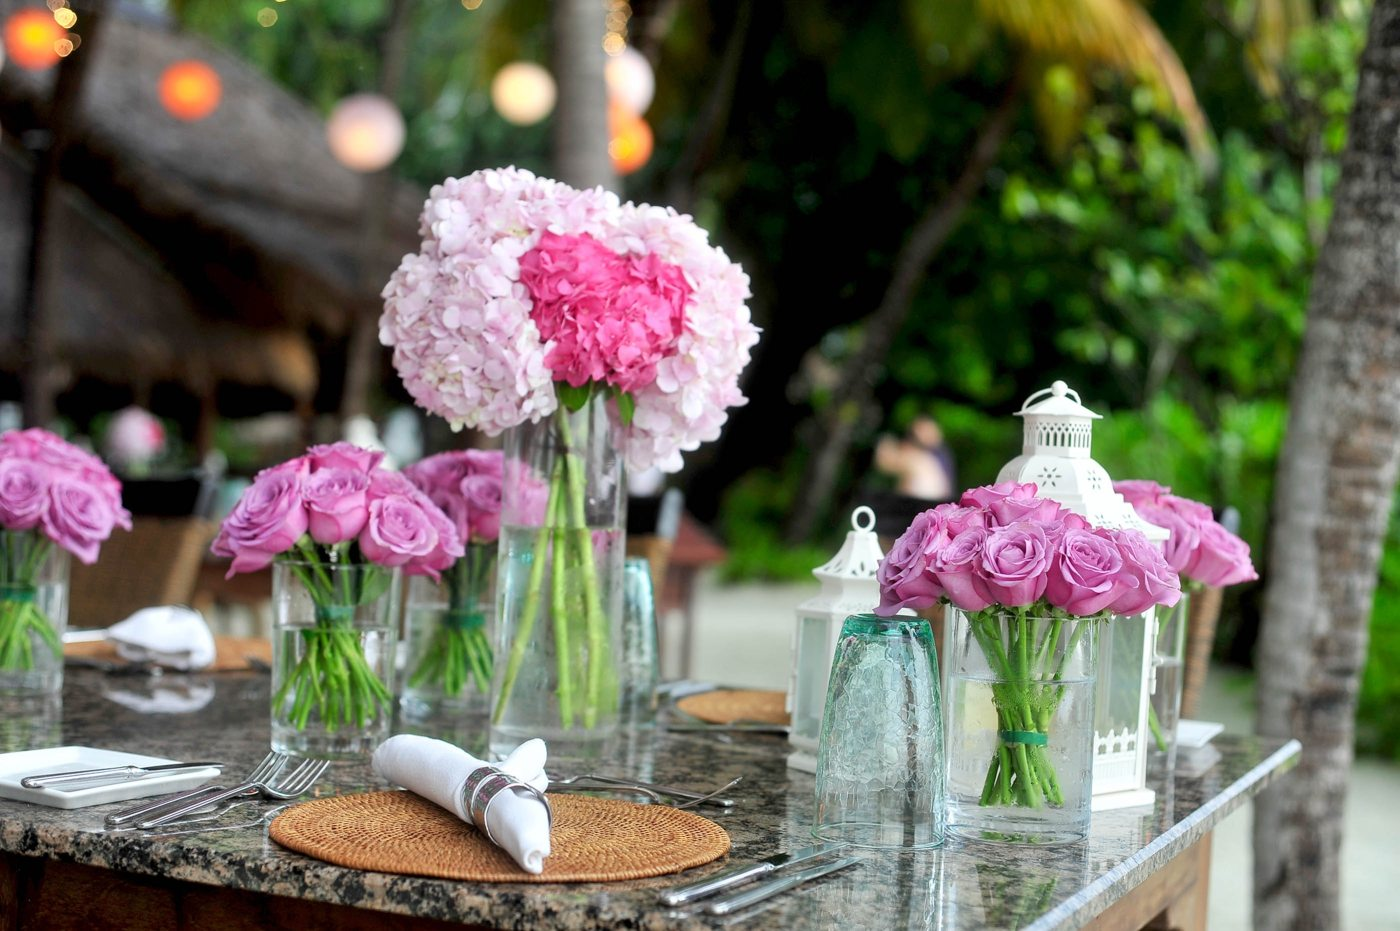 Table with pink bouquets of flowers